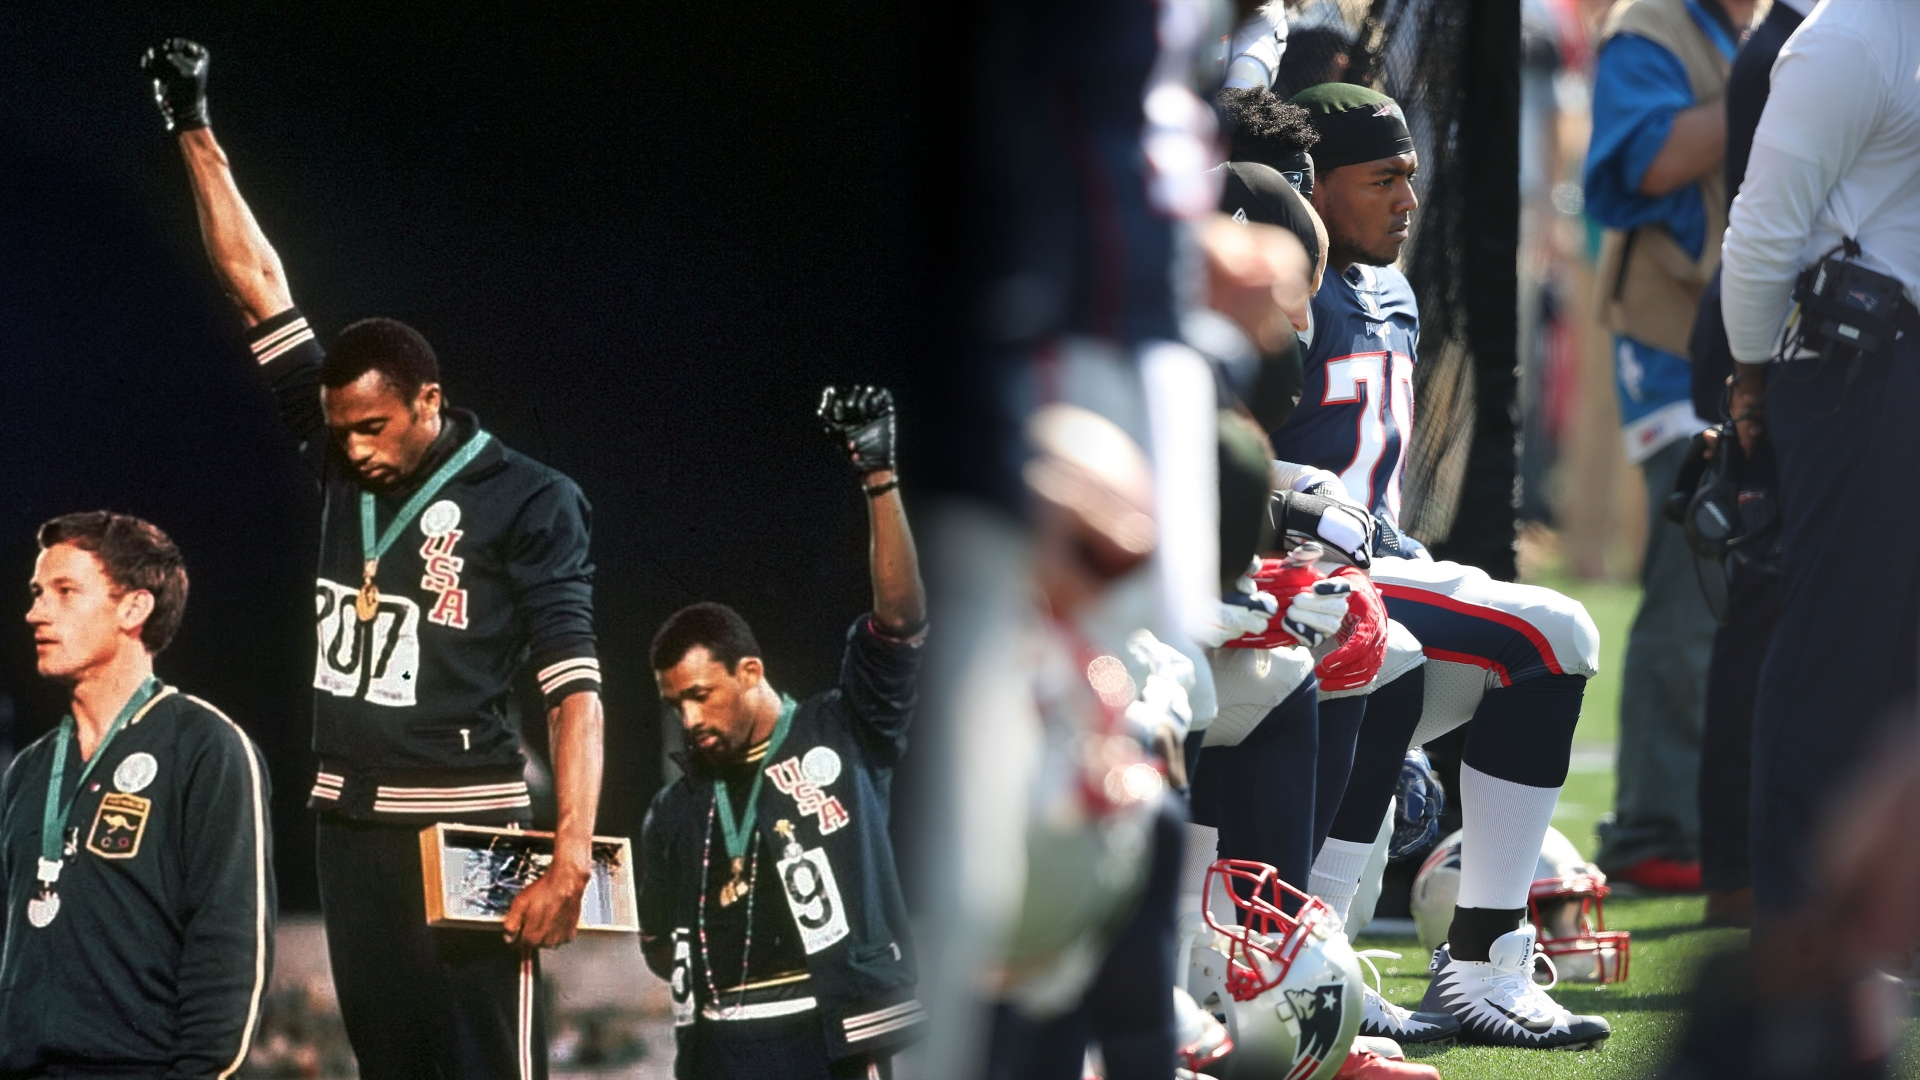 U.S. athletes Tommie Smith, center, and John Carlos staging a civil rights protest after Smith received the gold and Carlos the bronze for the 200 meter run at the Summer Olympic Games in Mexico City on Oct. 16, 1968. (Credit: AP Photo); New England Patriots Adam Butler takes a knee during the national anthem before the start of a game. (Credit: Jim Davis/The Boston Globe via Getty Images)